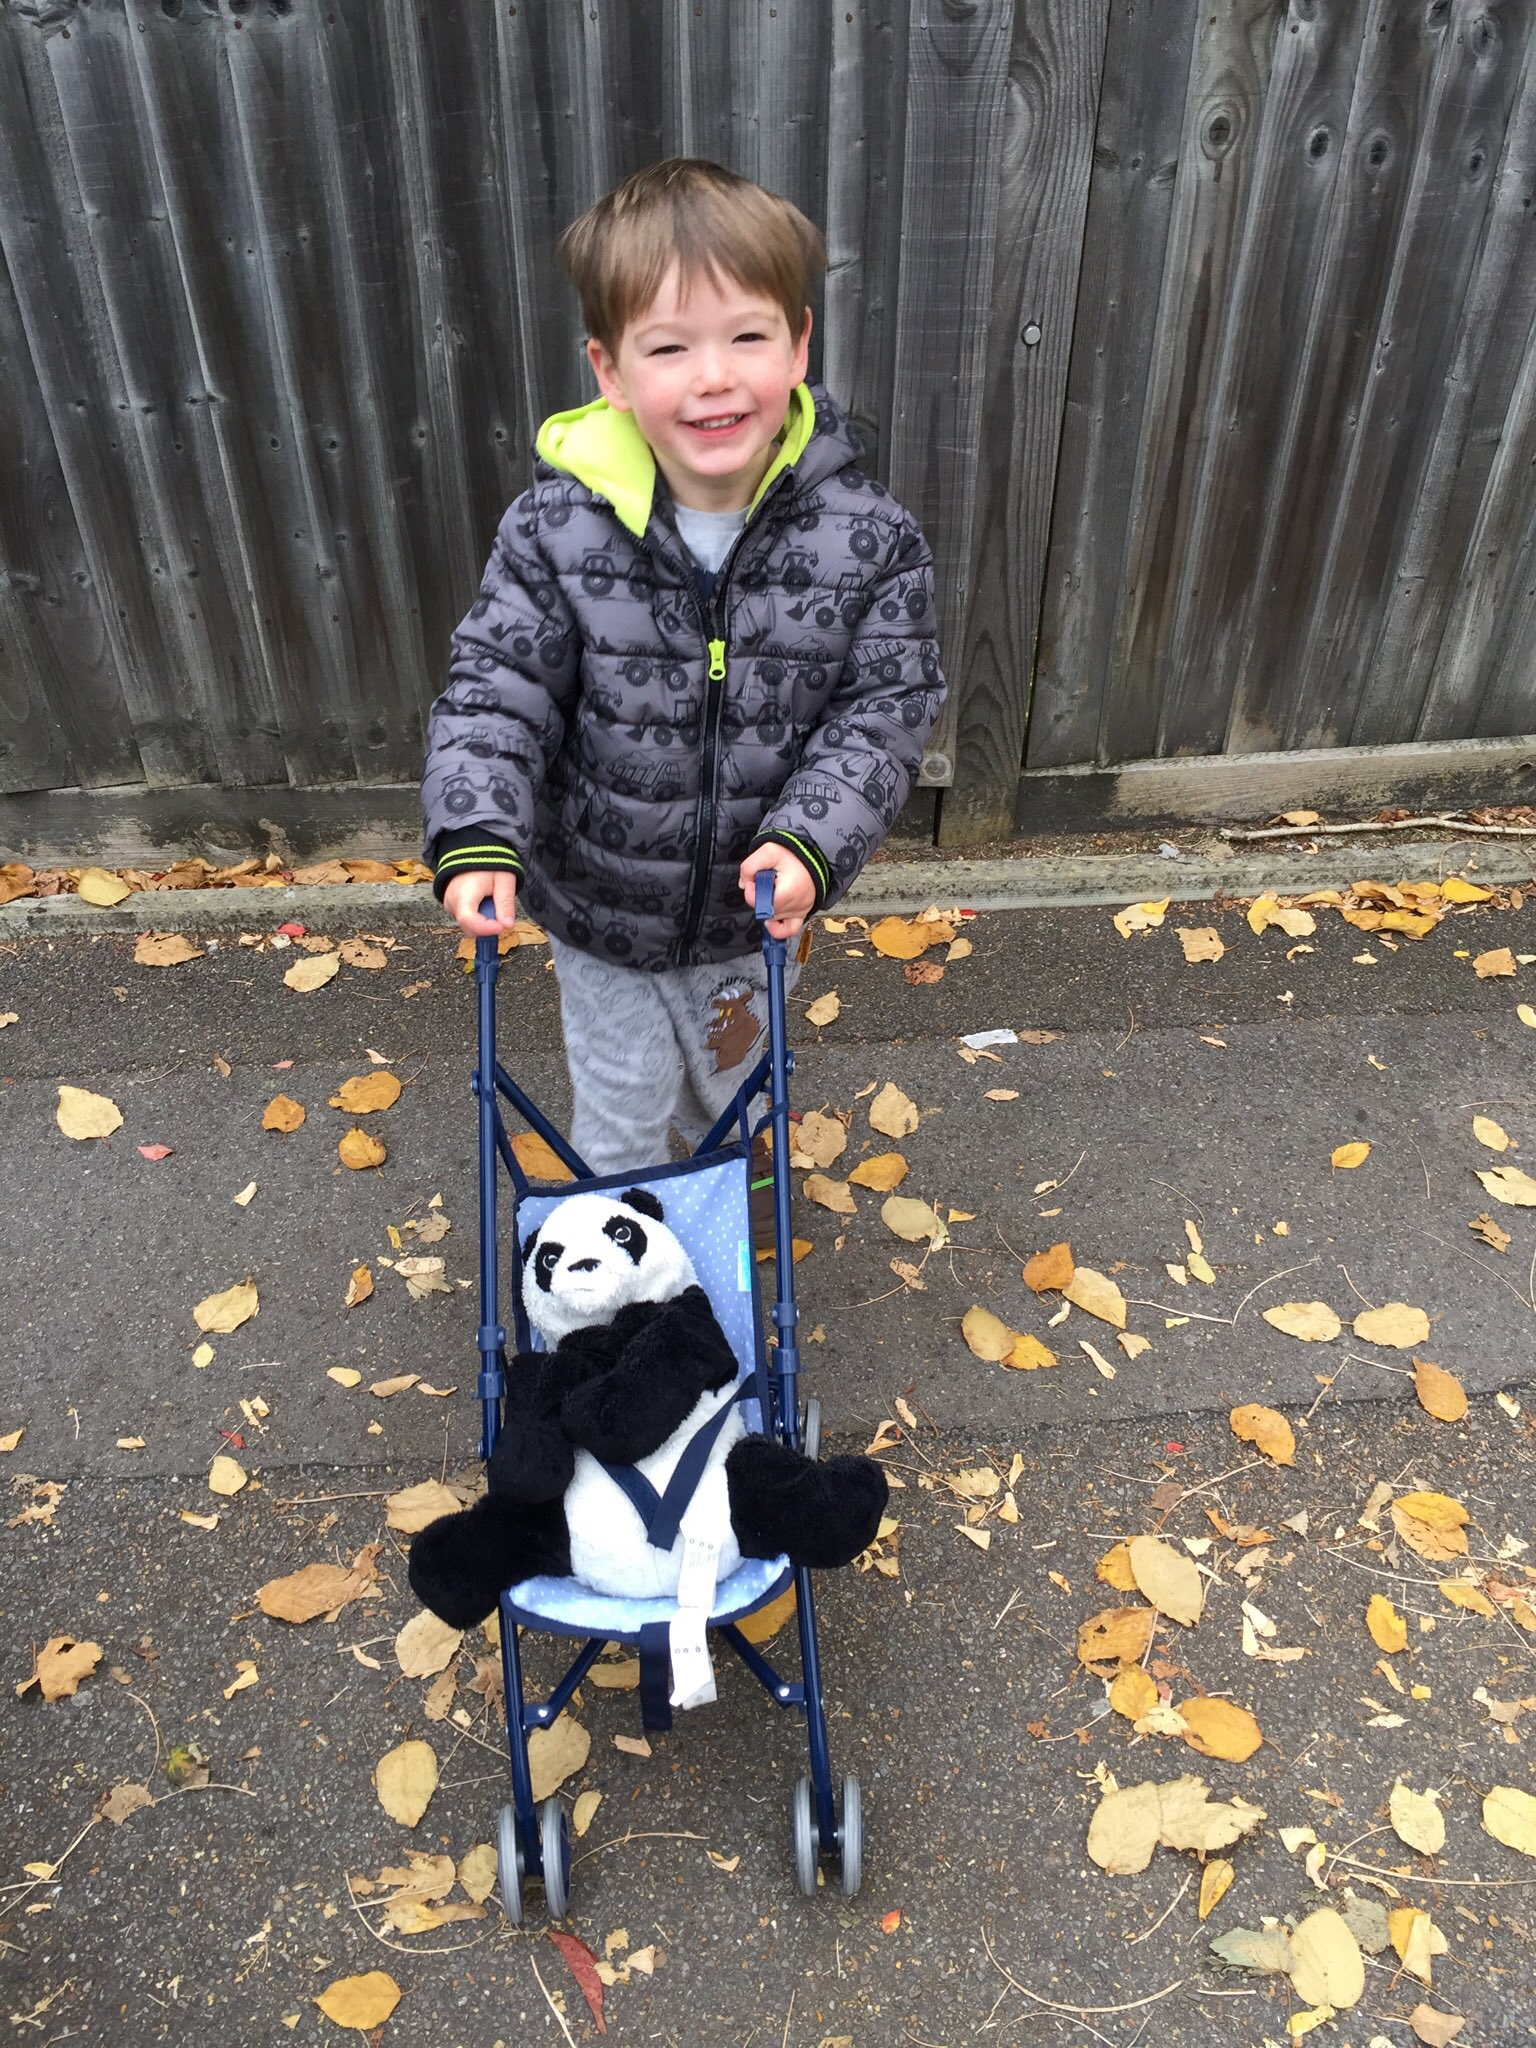 @LetToysBeToys @SilverCross_UK @playlikemum My son is happy to #playlikedad and looks after his panda like it's a baby 🐼 https://t.co/vOKFflVqfq